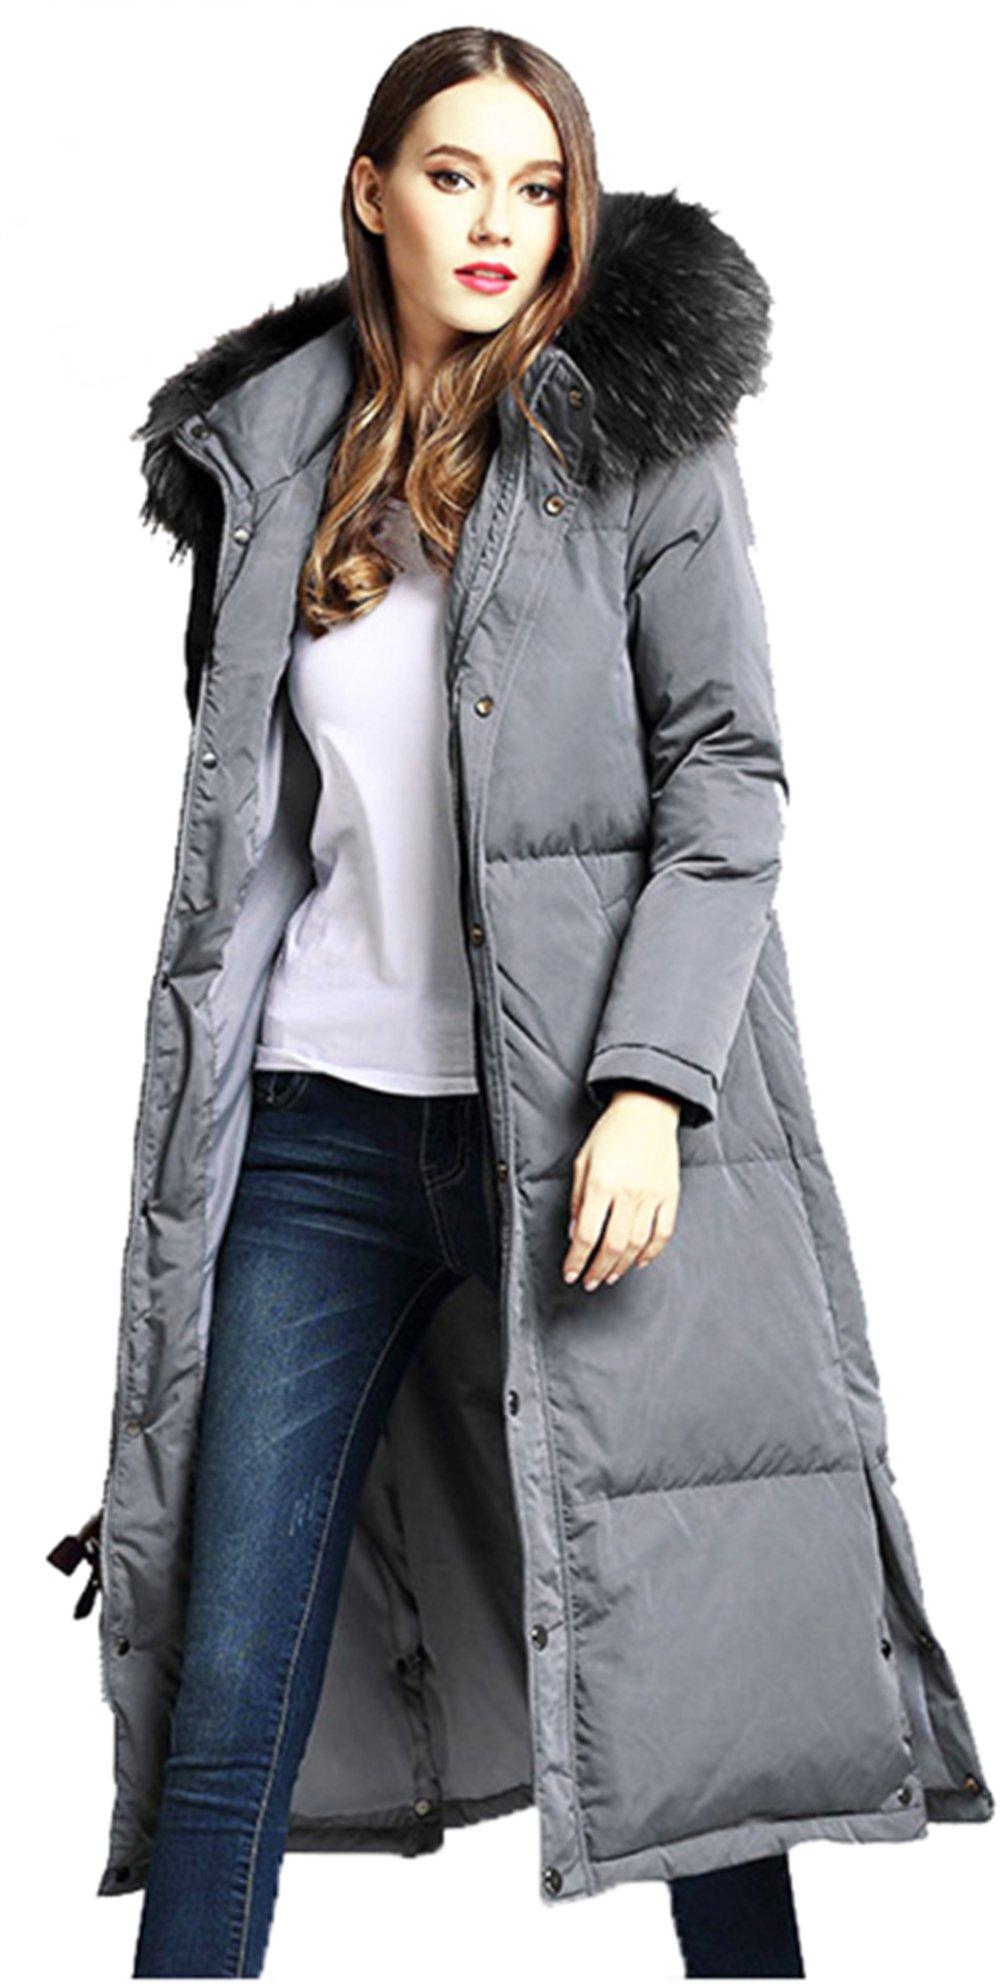 Women's Thicker Down Jacket With Removable Hood Fur For Winter (XXL, Grey) by unkonw